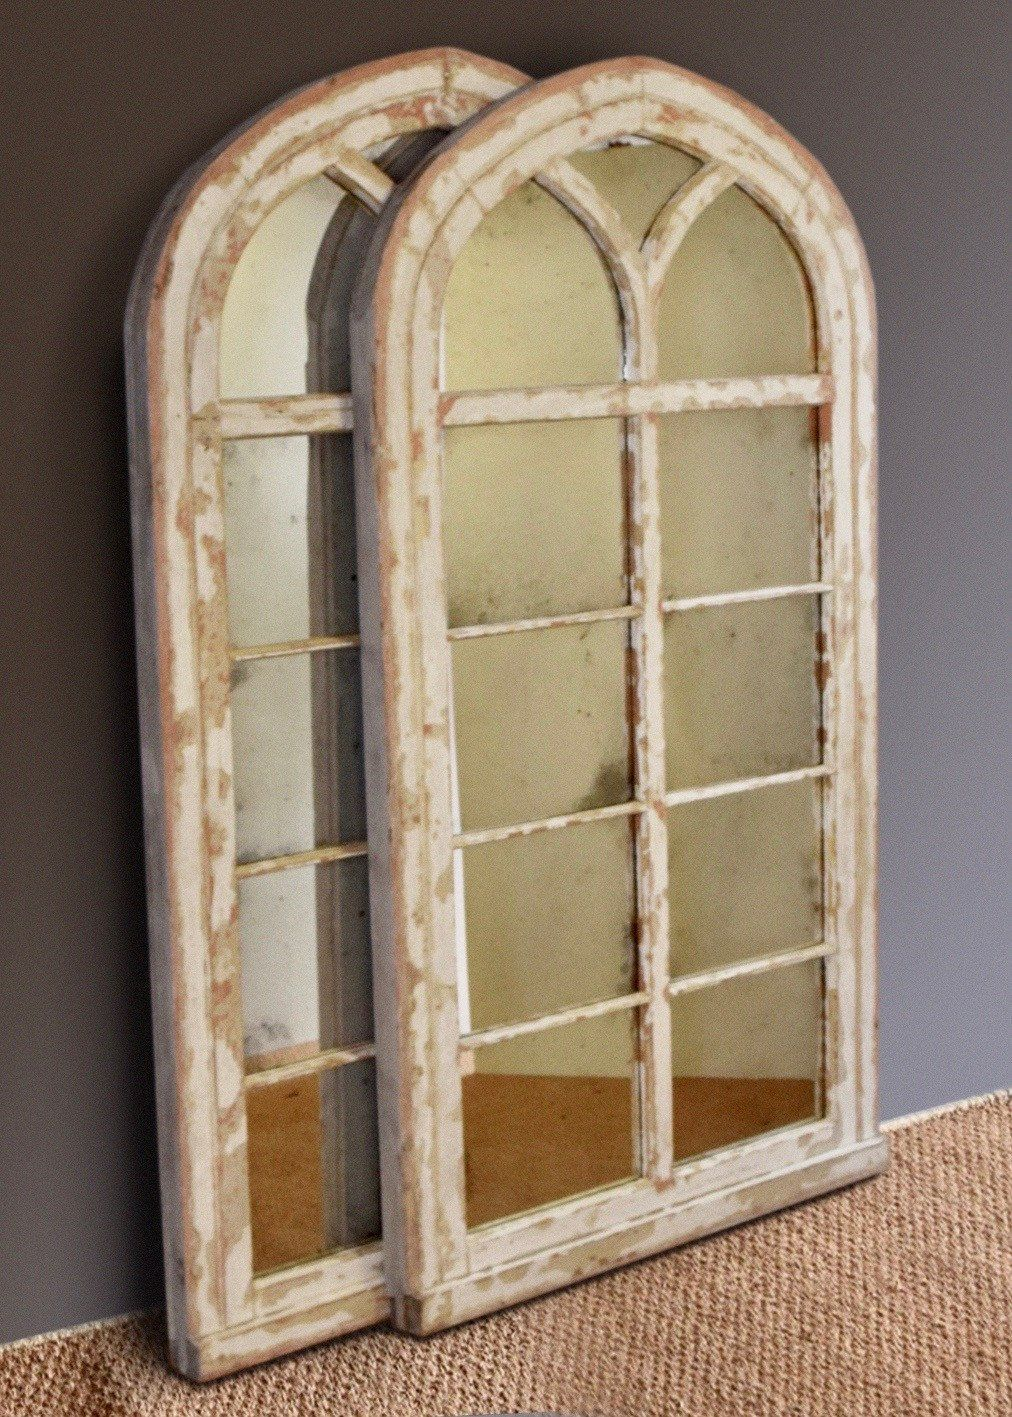 Large Gothic Arched Window Mirror Rough Old Glass